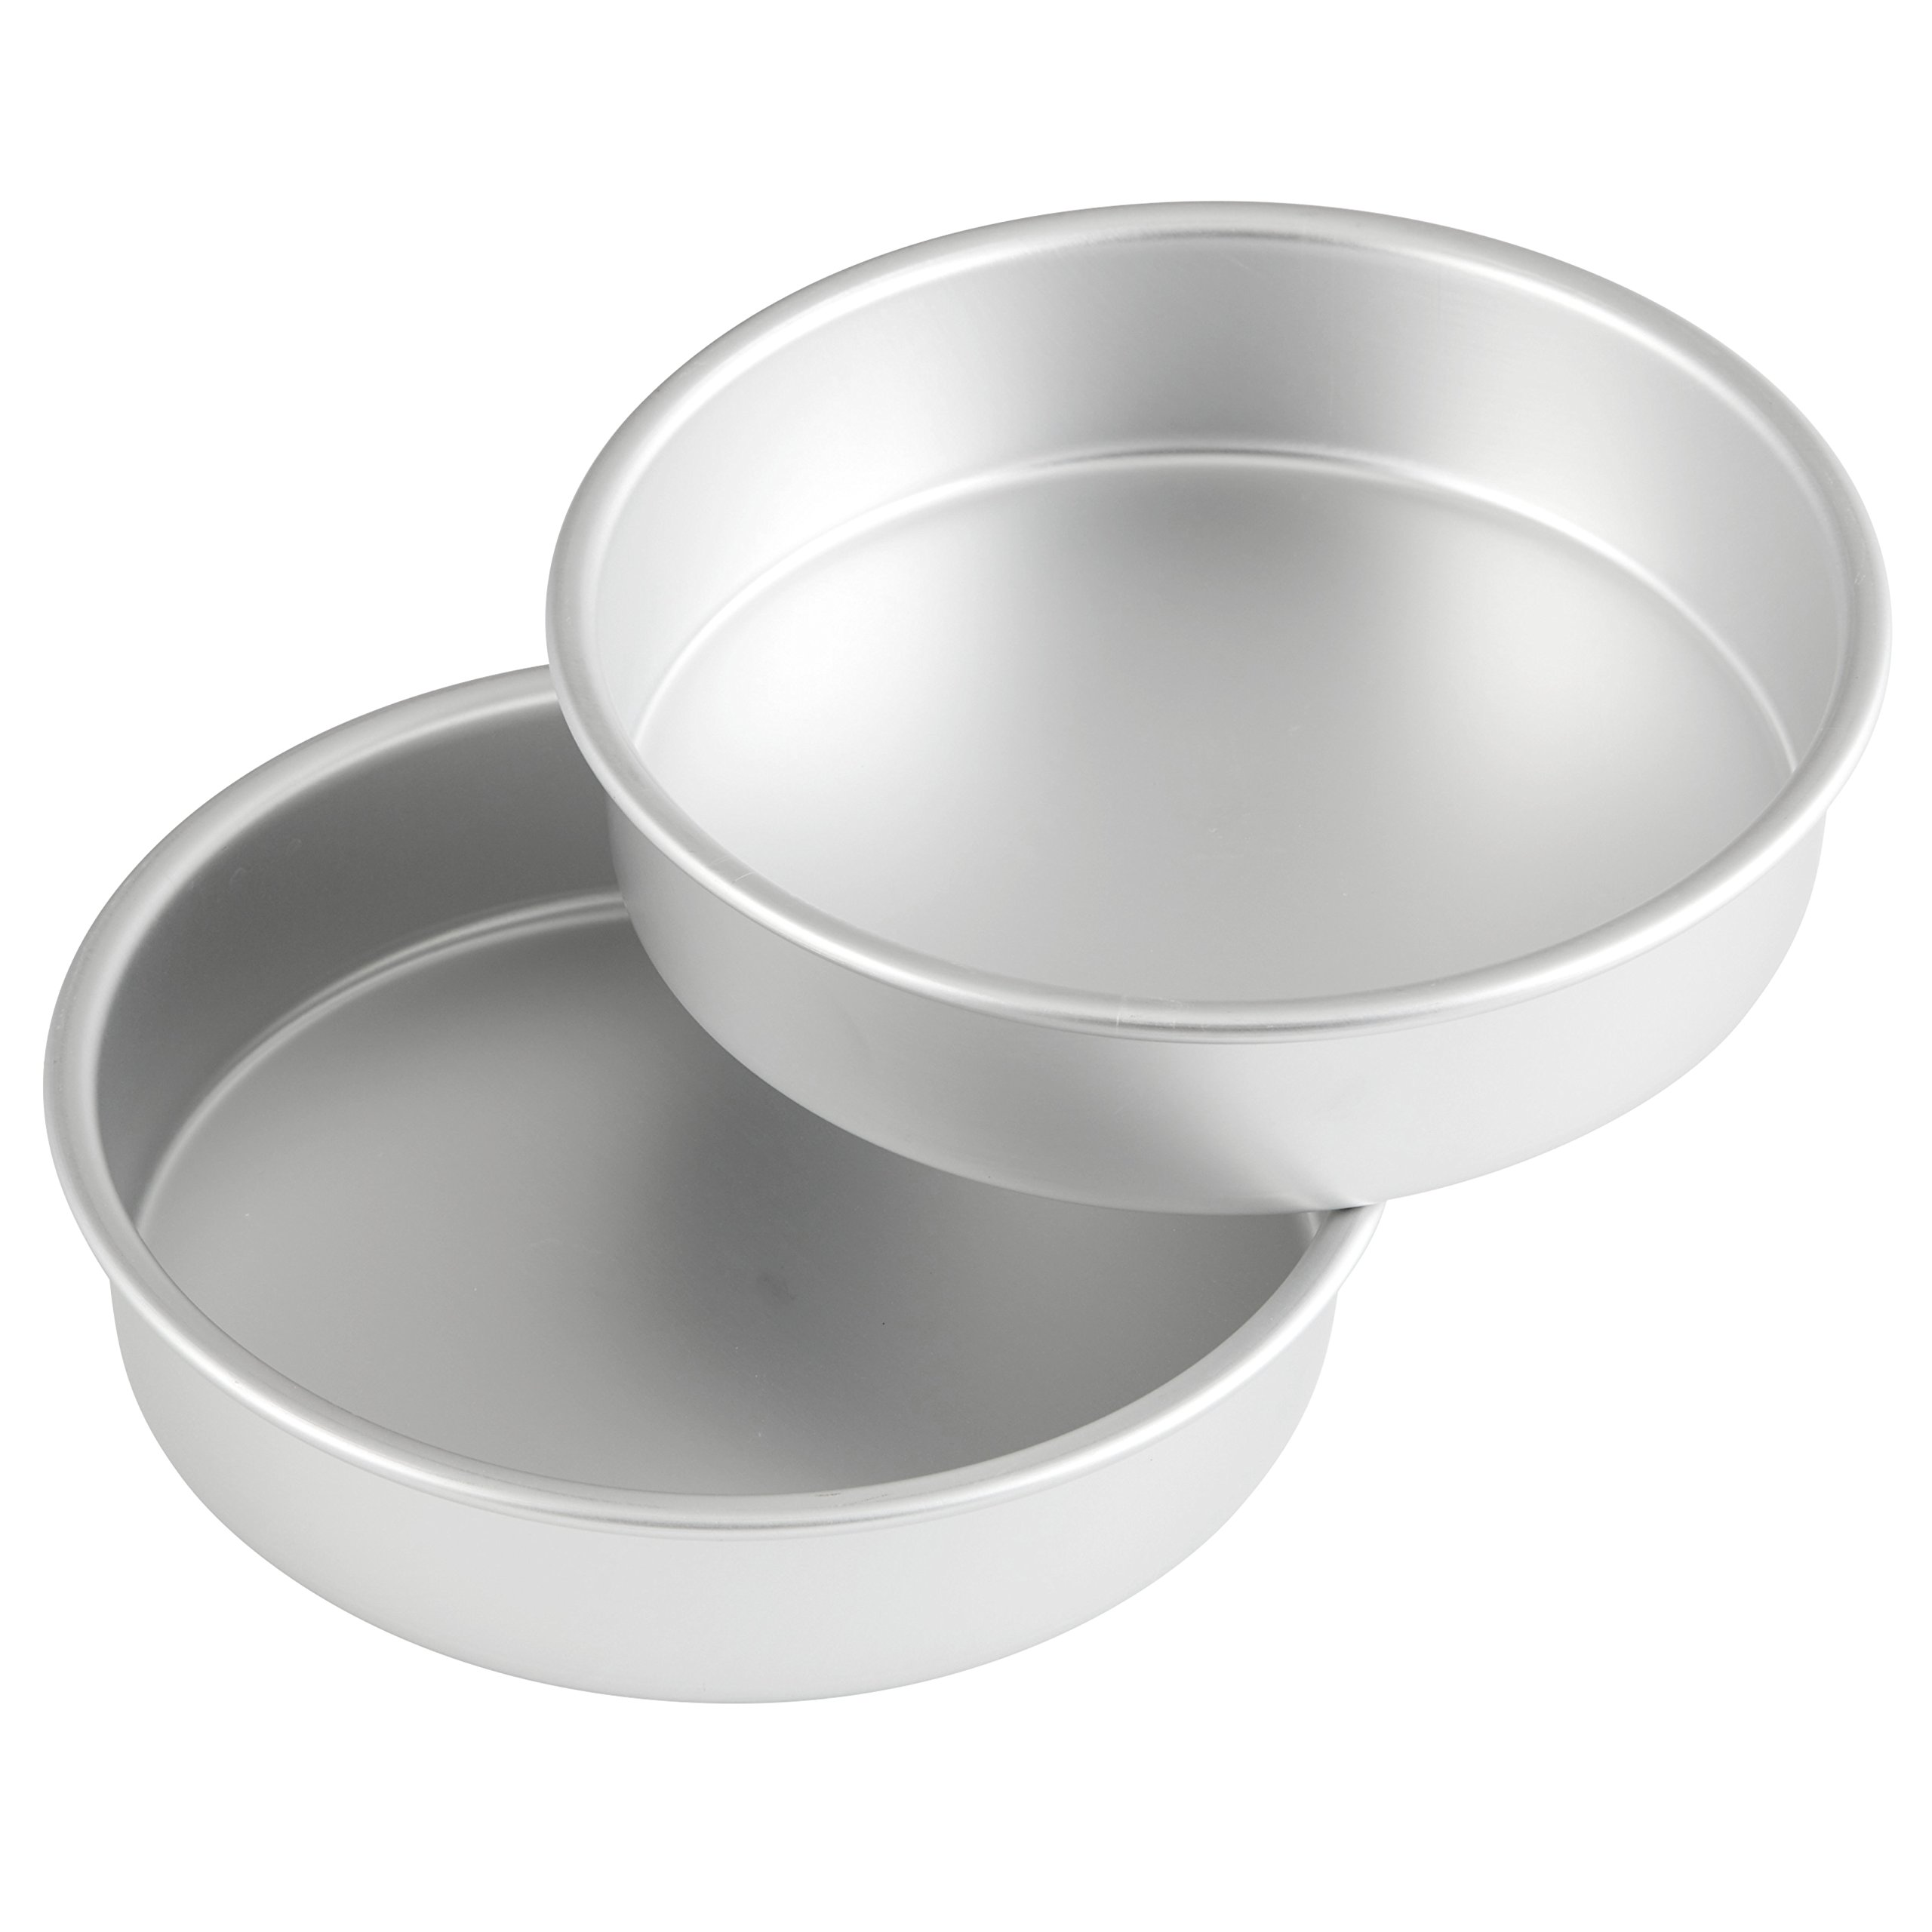 Wilton Aluminum Round Performance Pan Multipack, 8 in. x 2 in. (2-Pack)